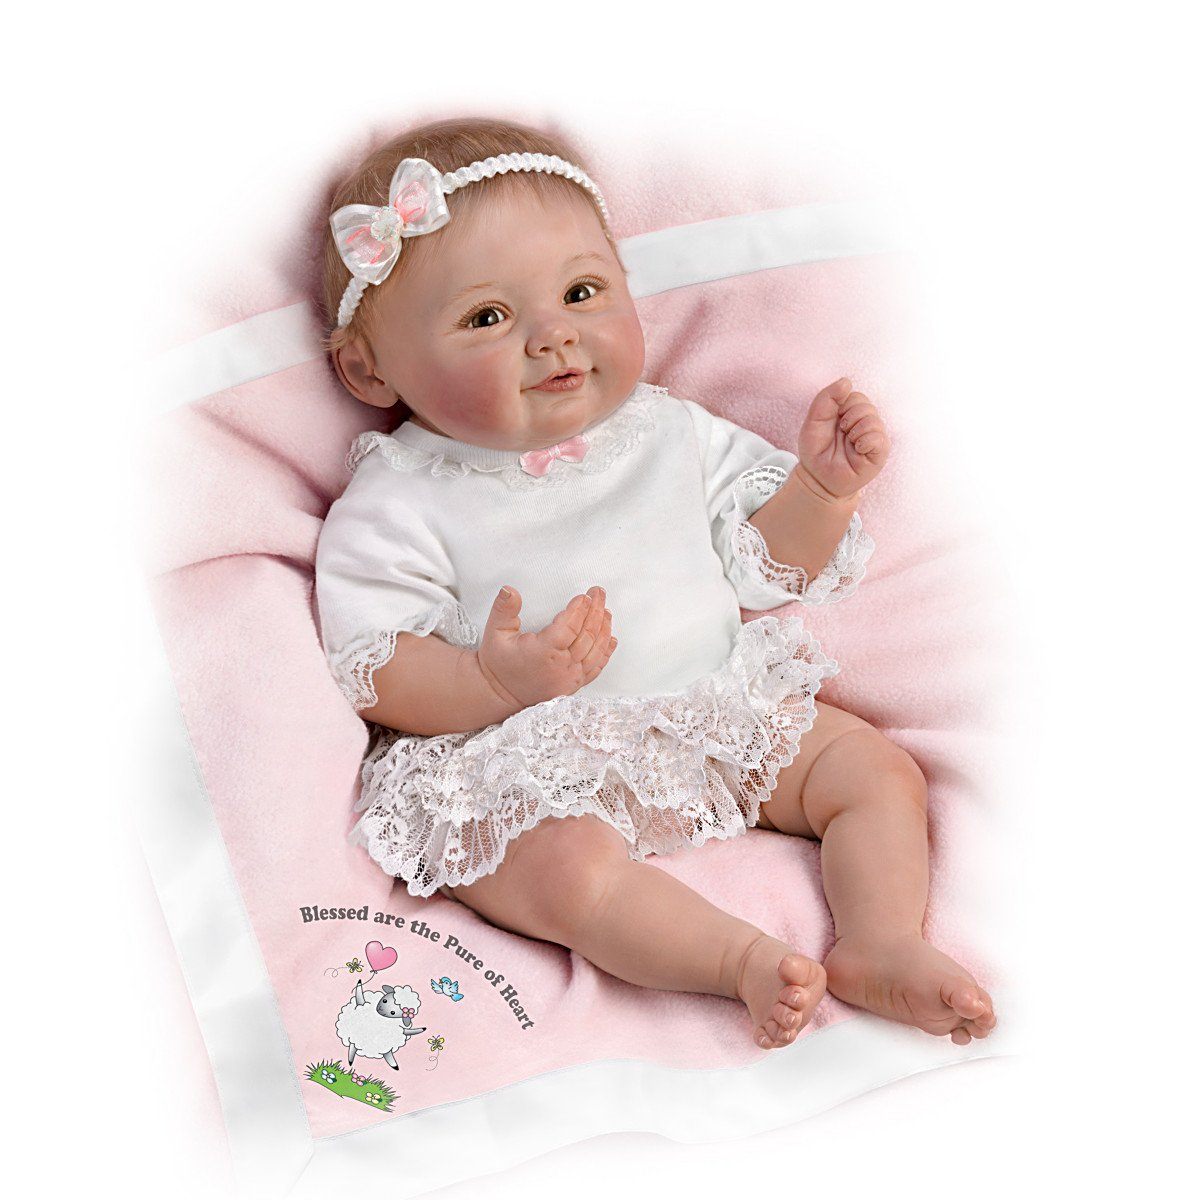 Blessed are the Pure of Heart Ashton Drake Doll by Ping Lau 18 inches